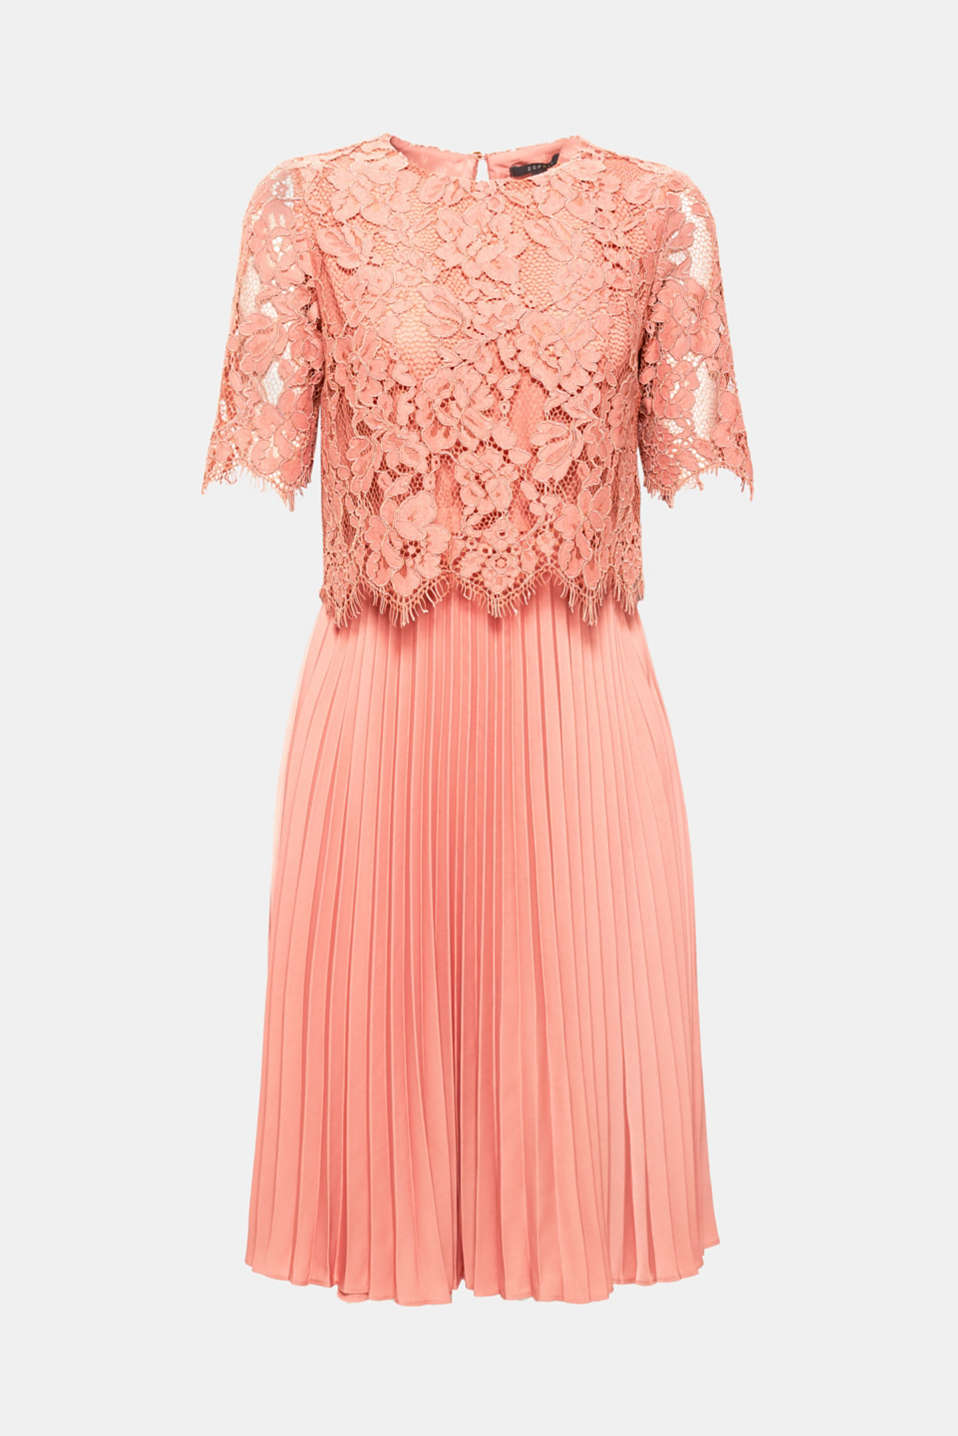 Layered dress with a lace top and pleated skirt, SALMON, detail image number 6